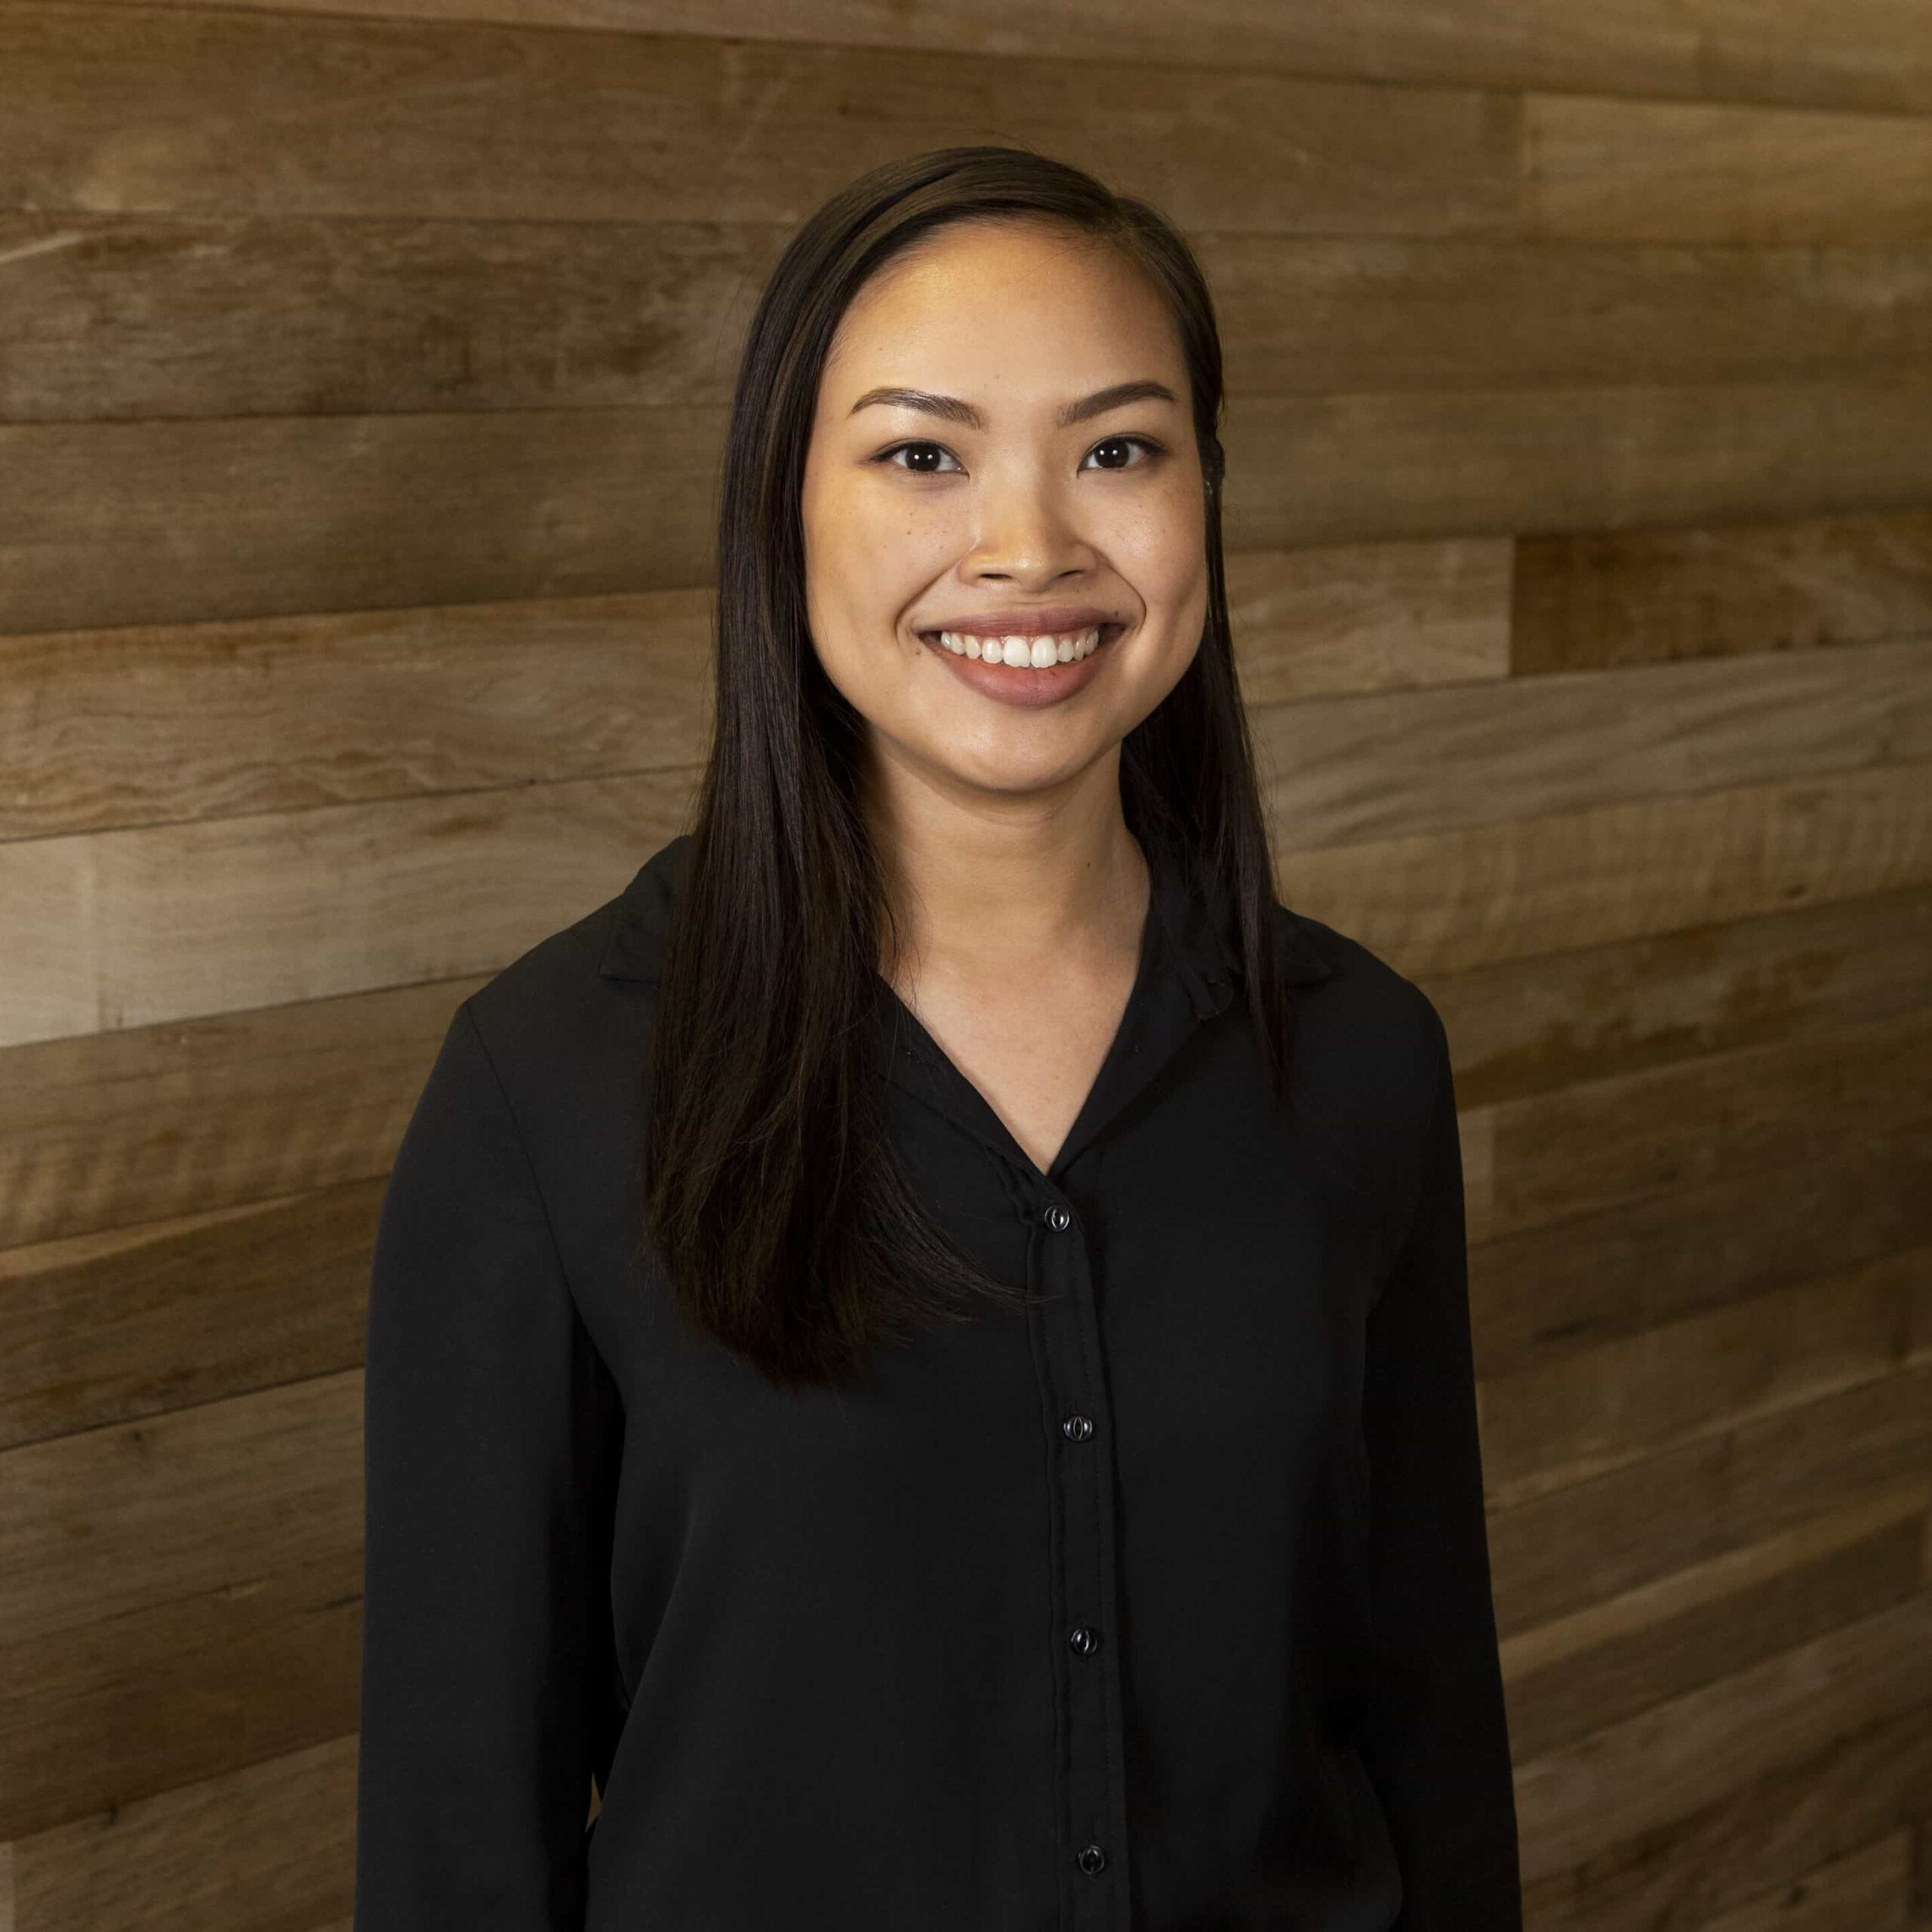 Jenny Phung, Operations Officer at Ledge Finance.